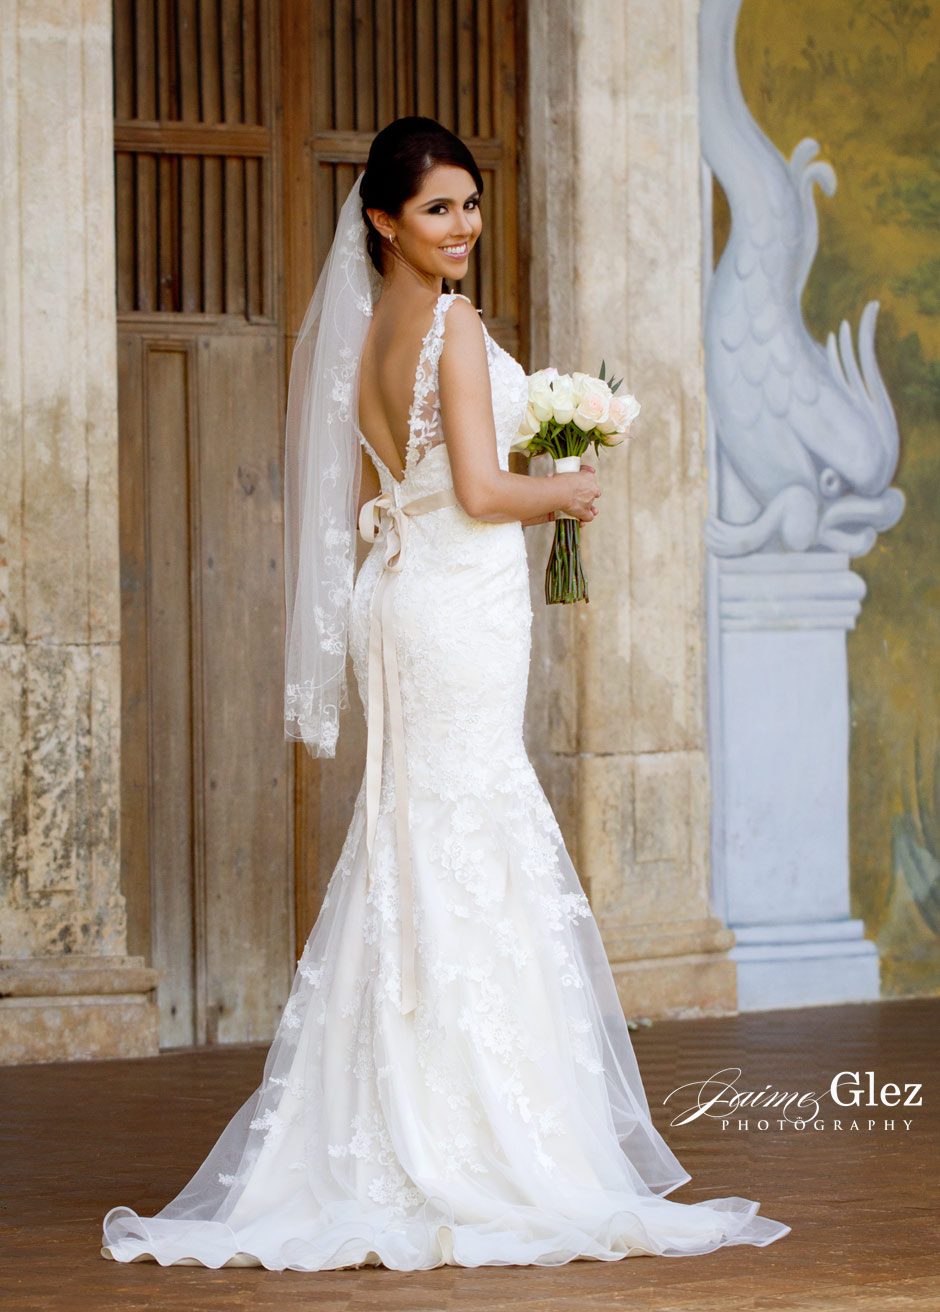 Beautiful bride in her stunning detailed wedding dress.